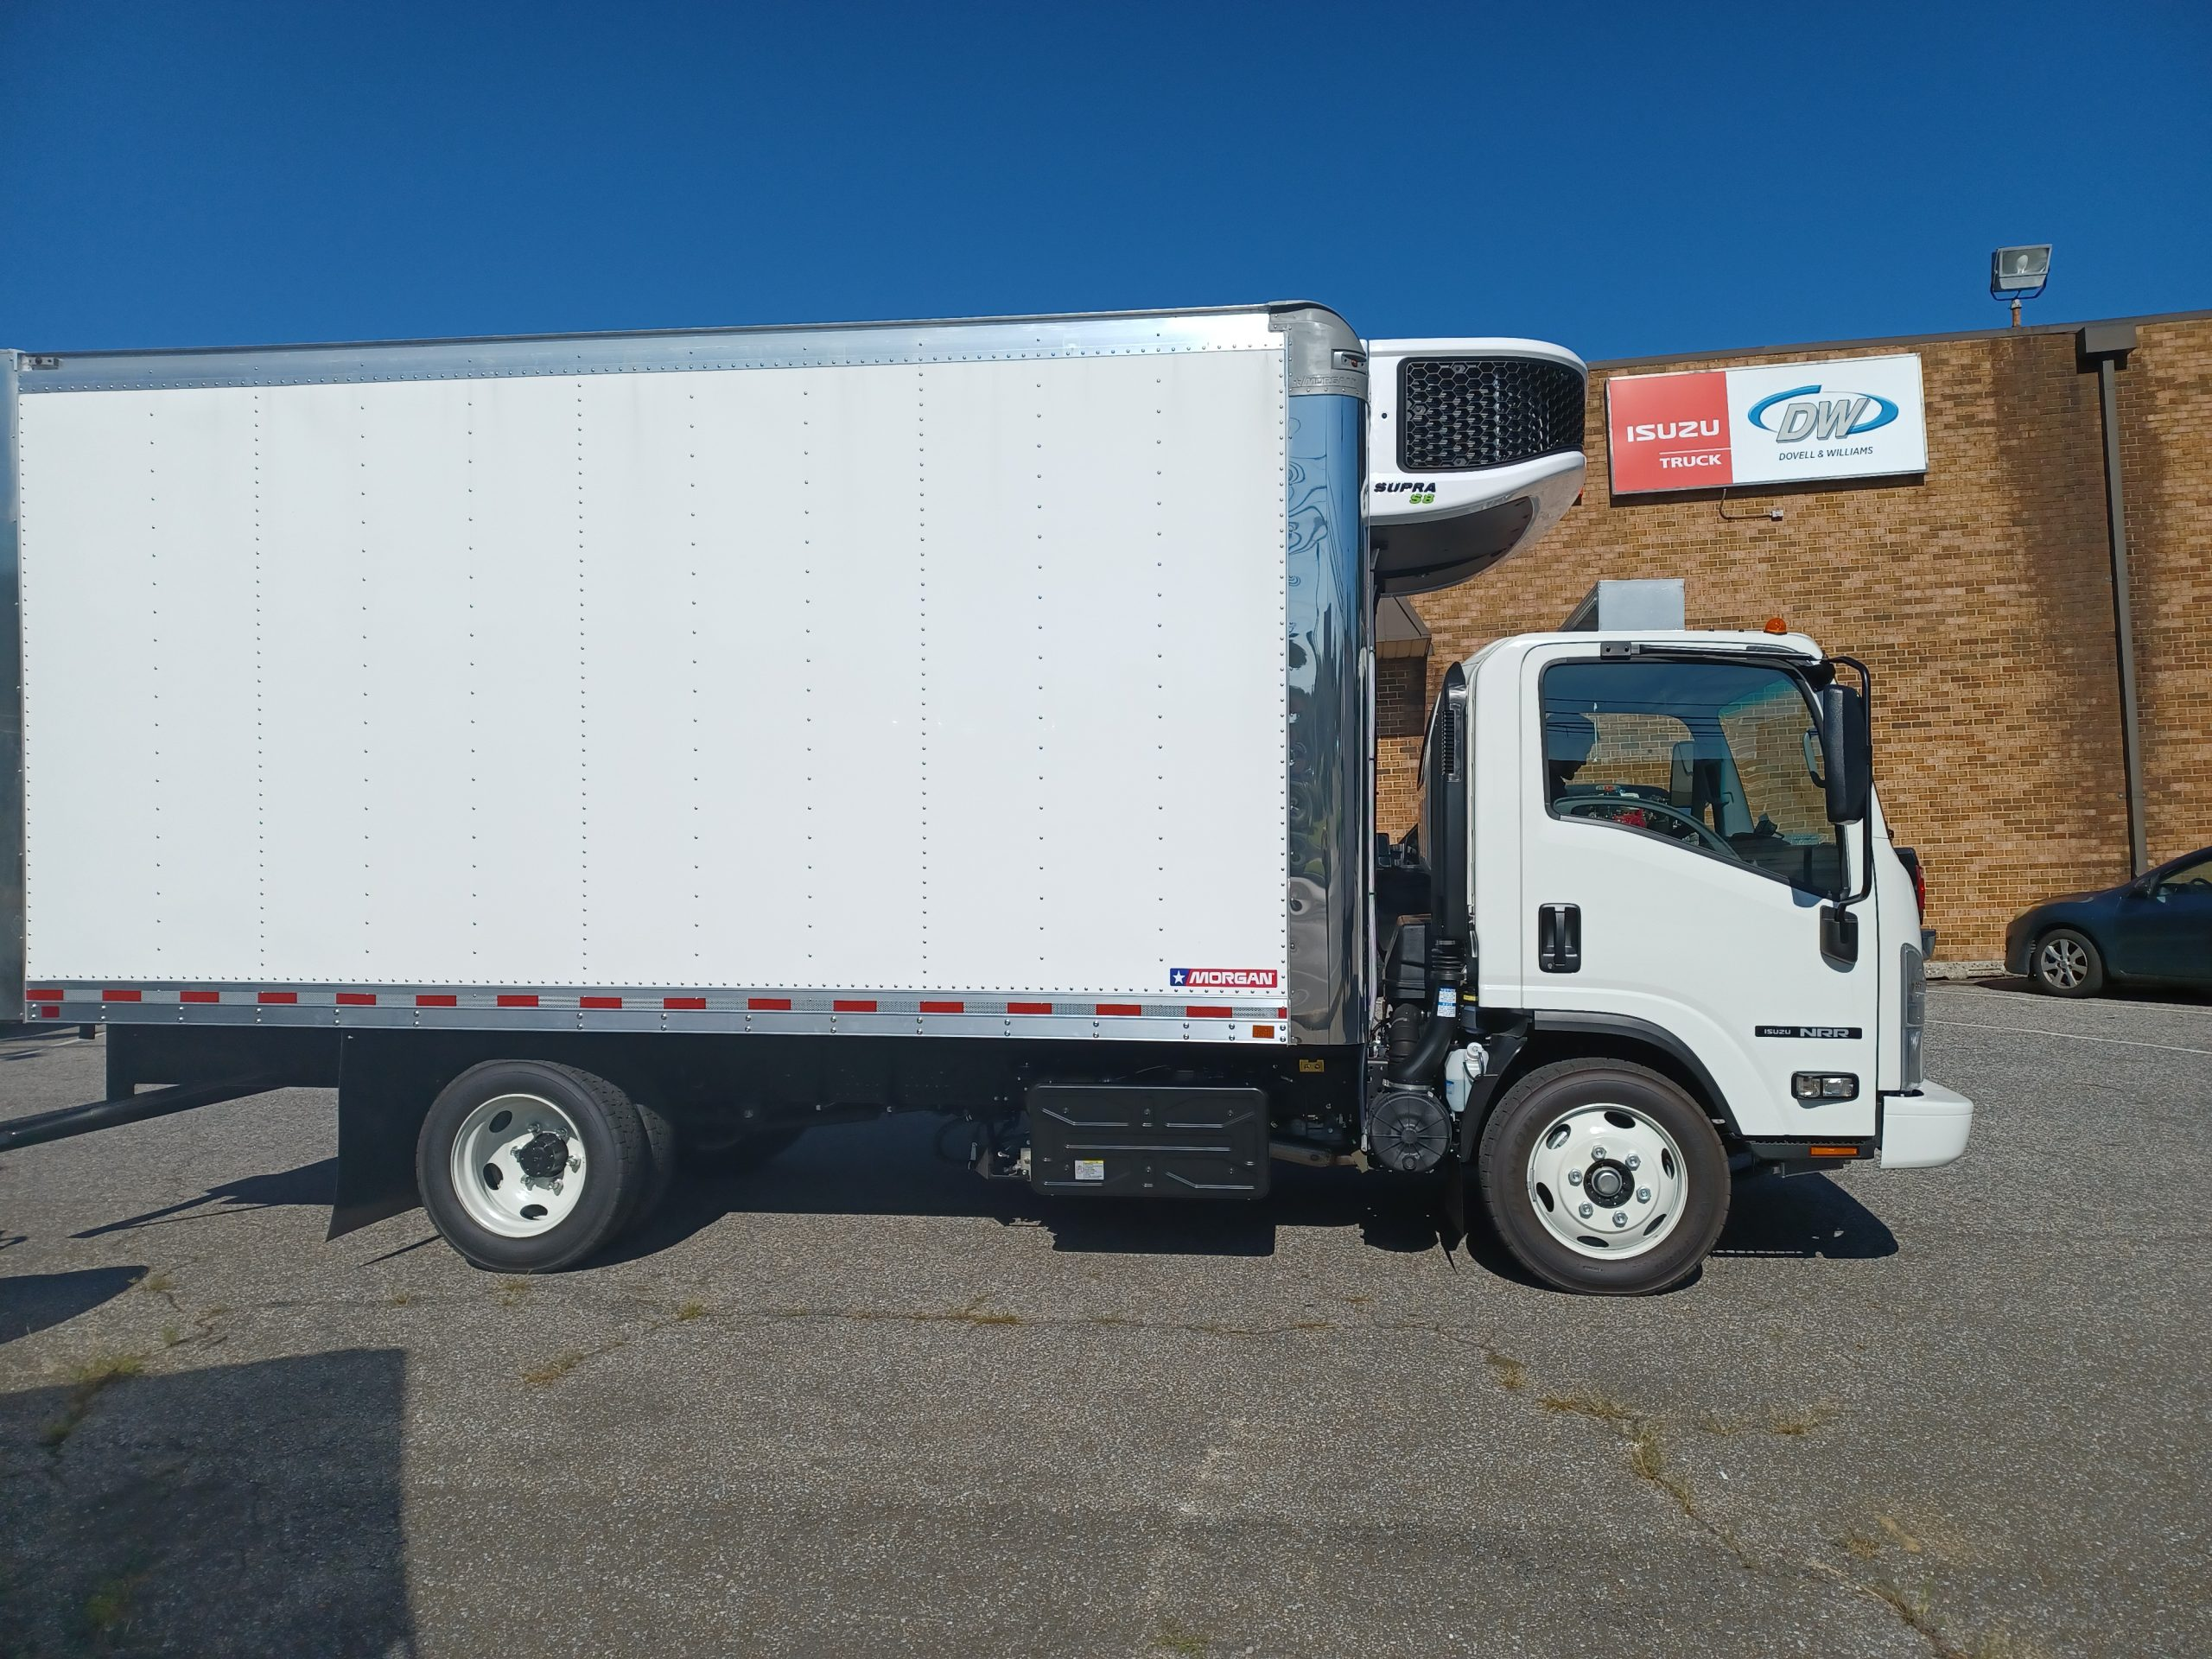 2022 NRR Refrigerated Truck Diesel 3 year Unlimited Mile Warranty 20210903_094416-scaled